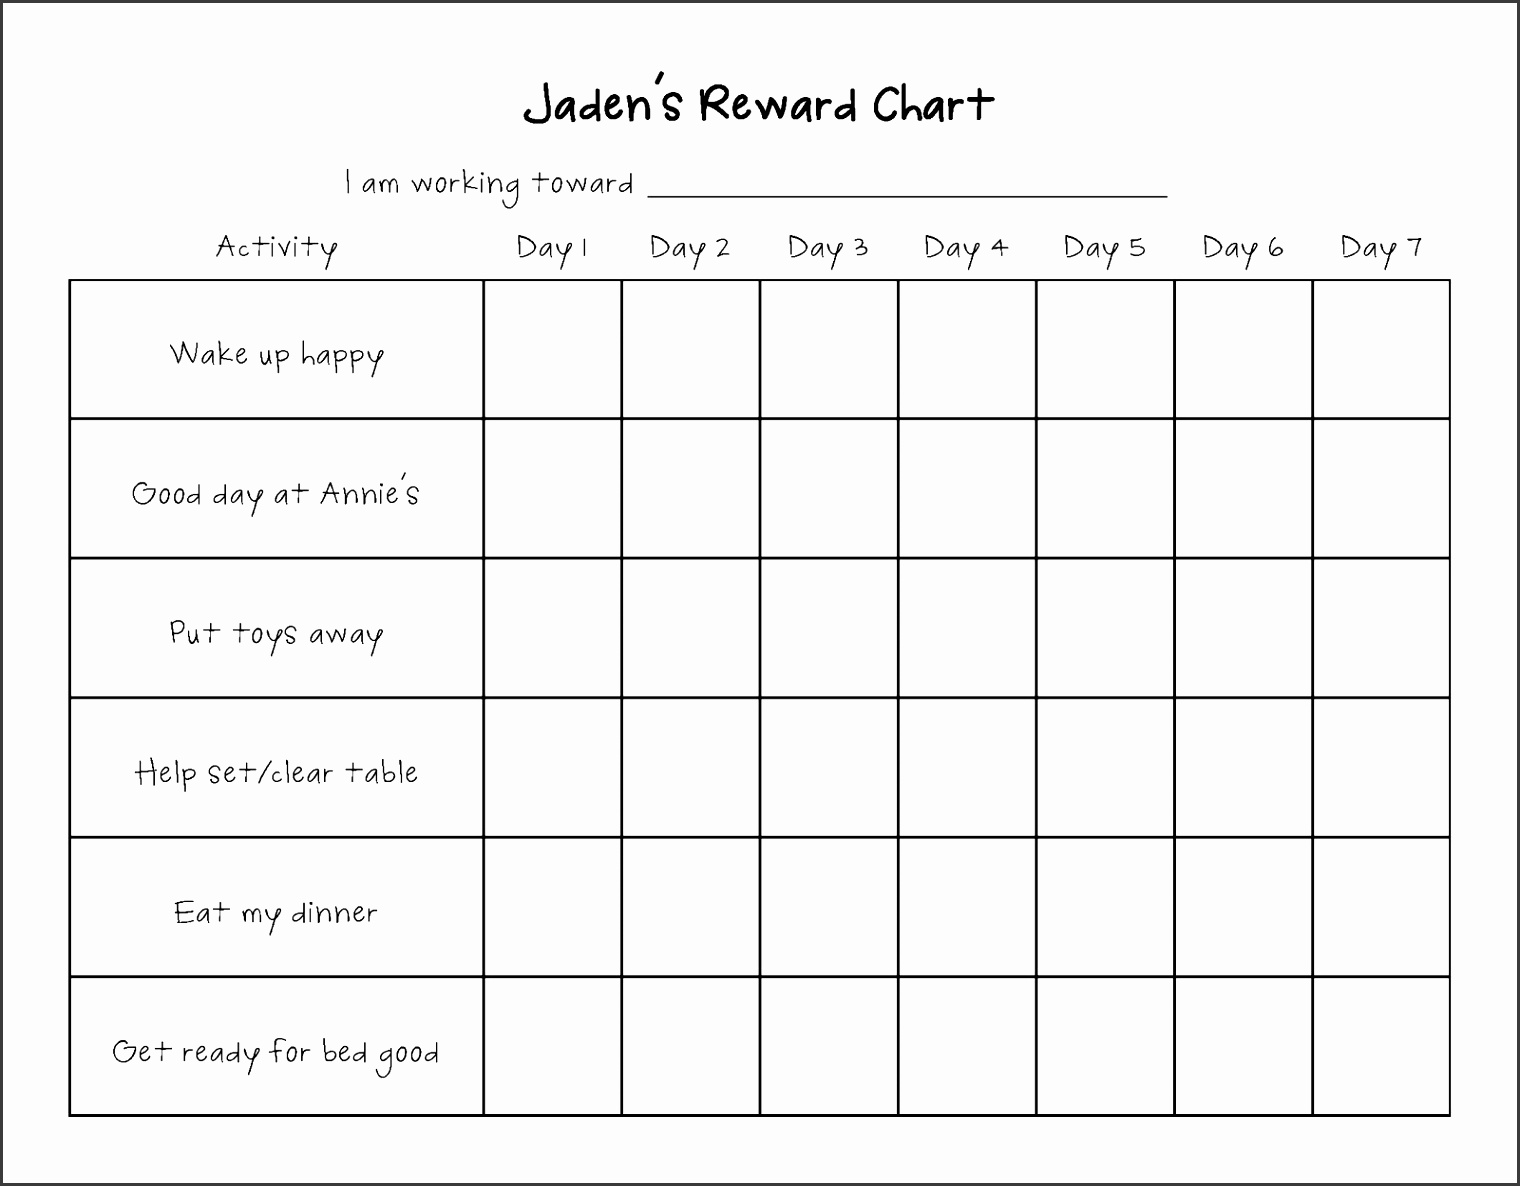 Living My Life Purpose Reward Chart Update